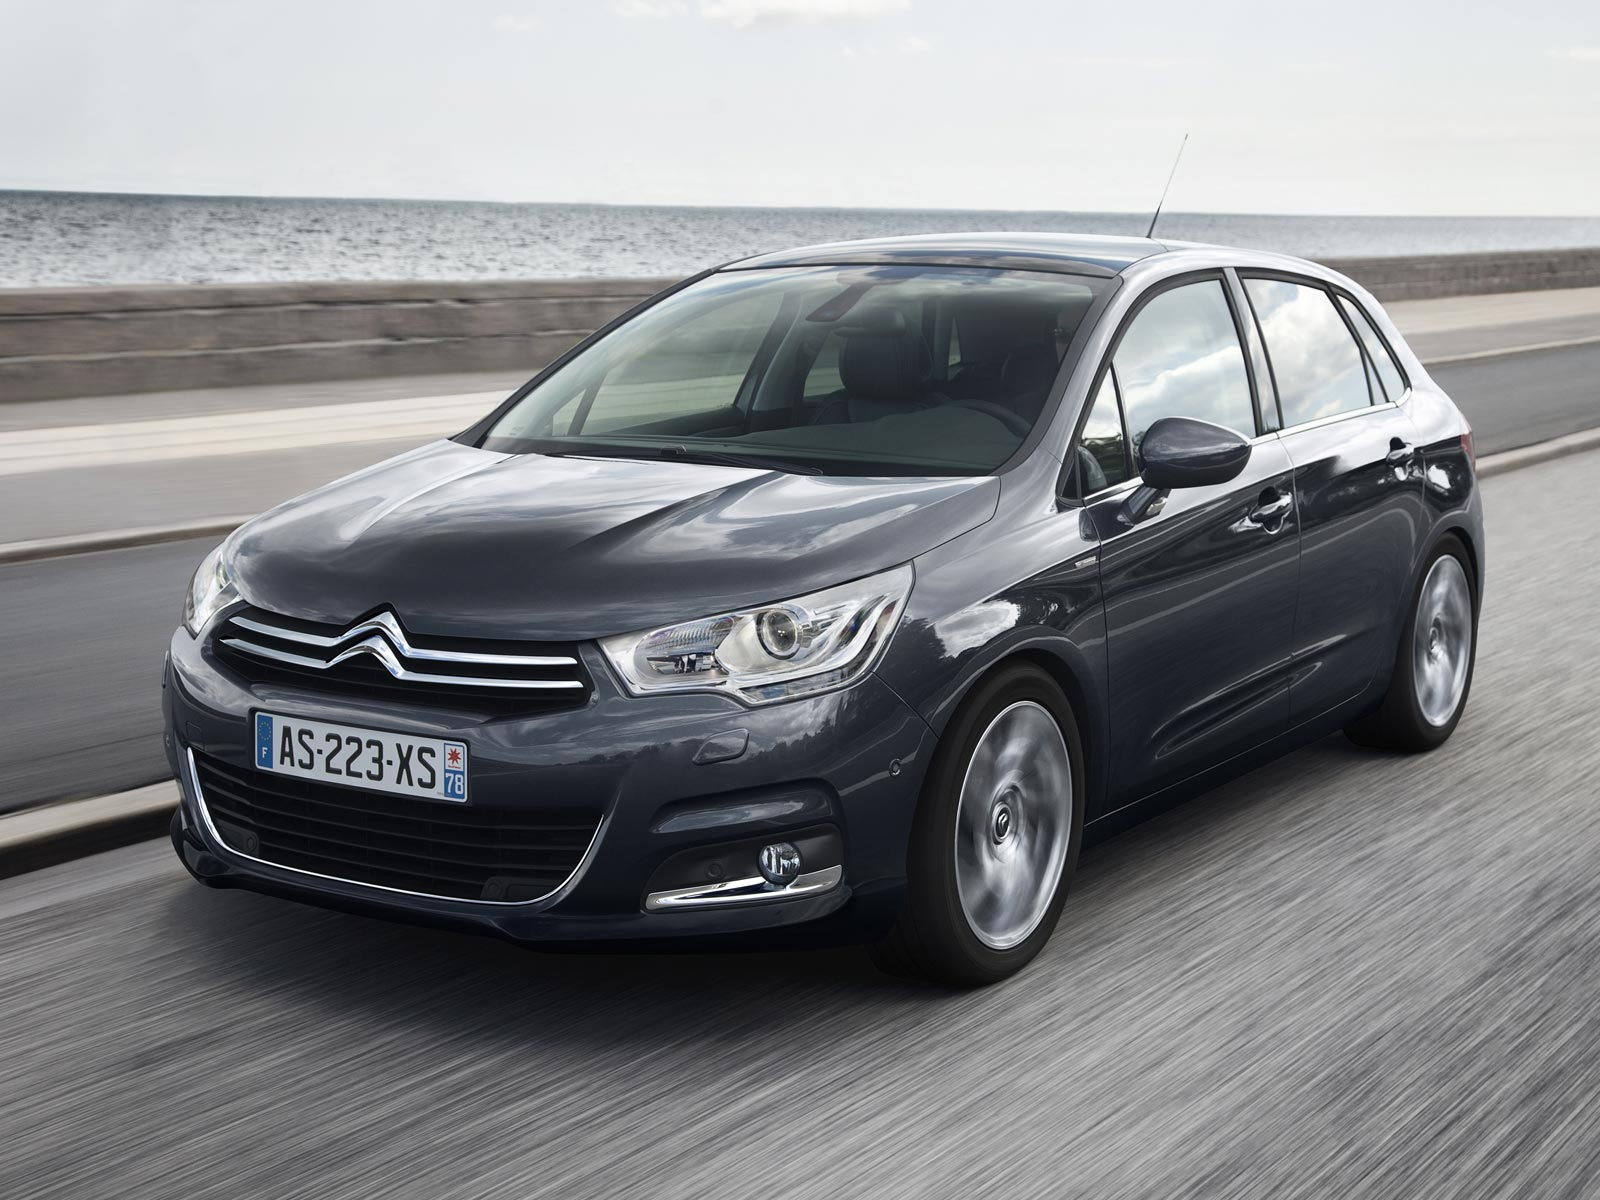 2019 Citroen C8 Exclusive photo - 2